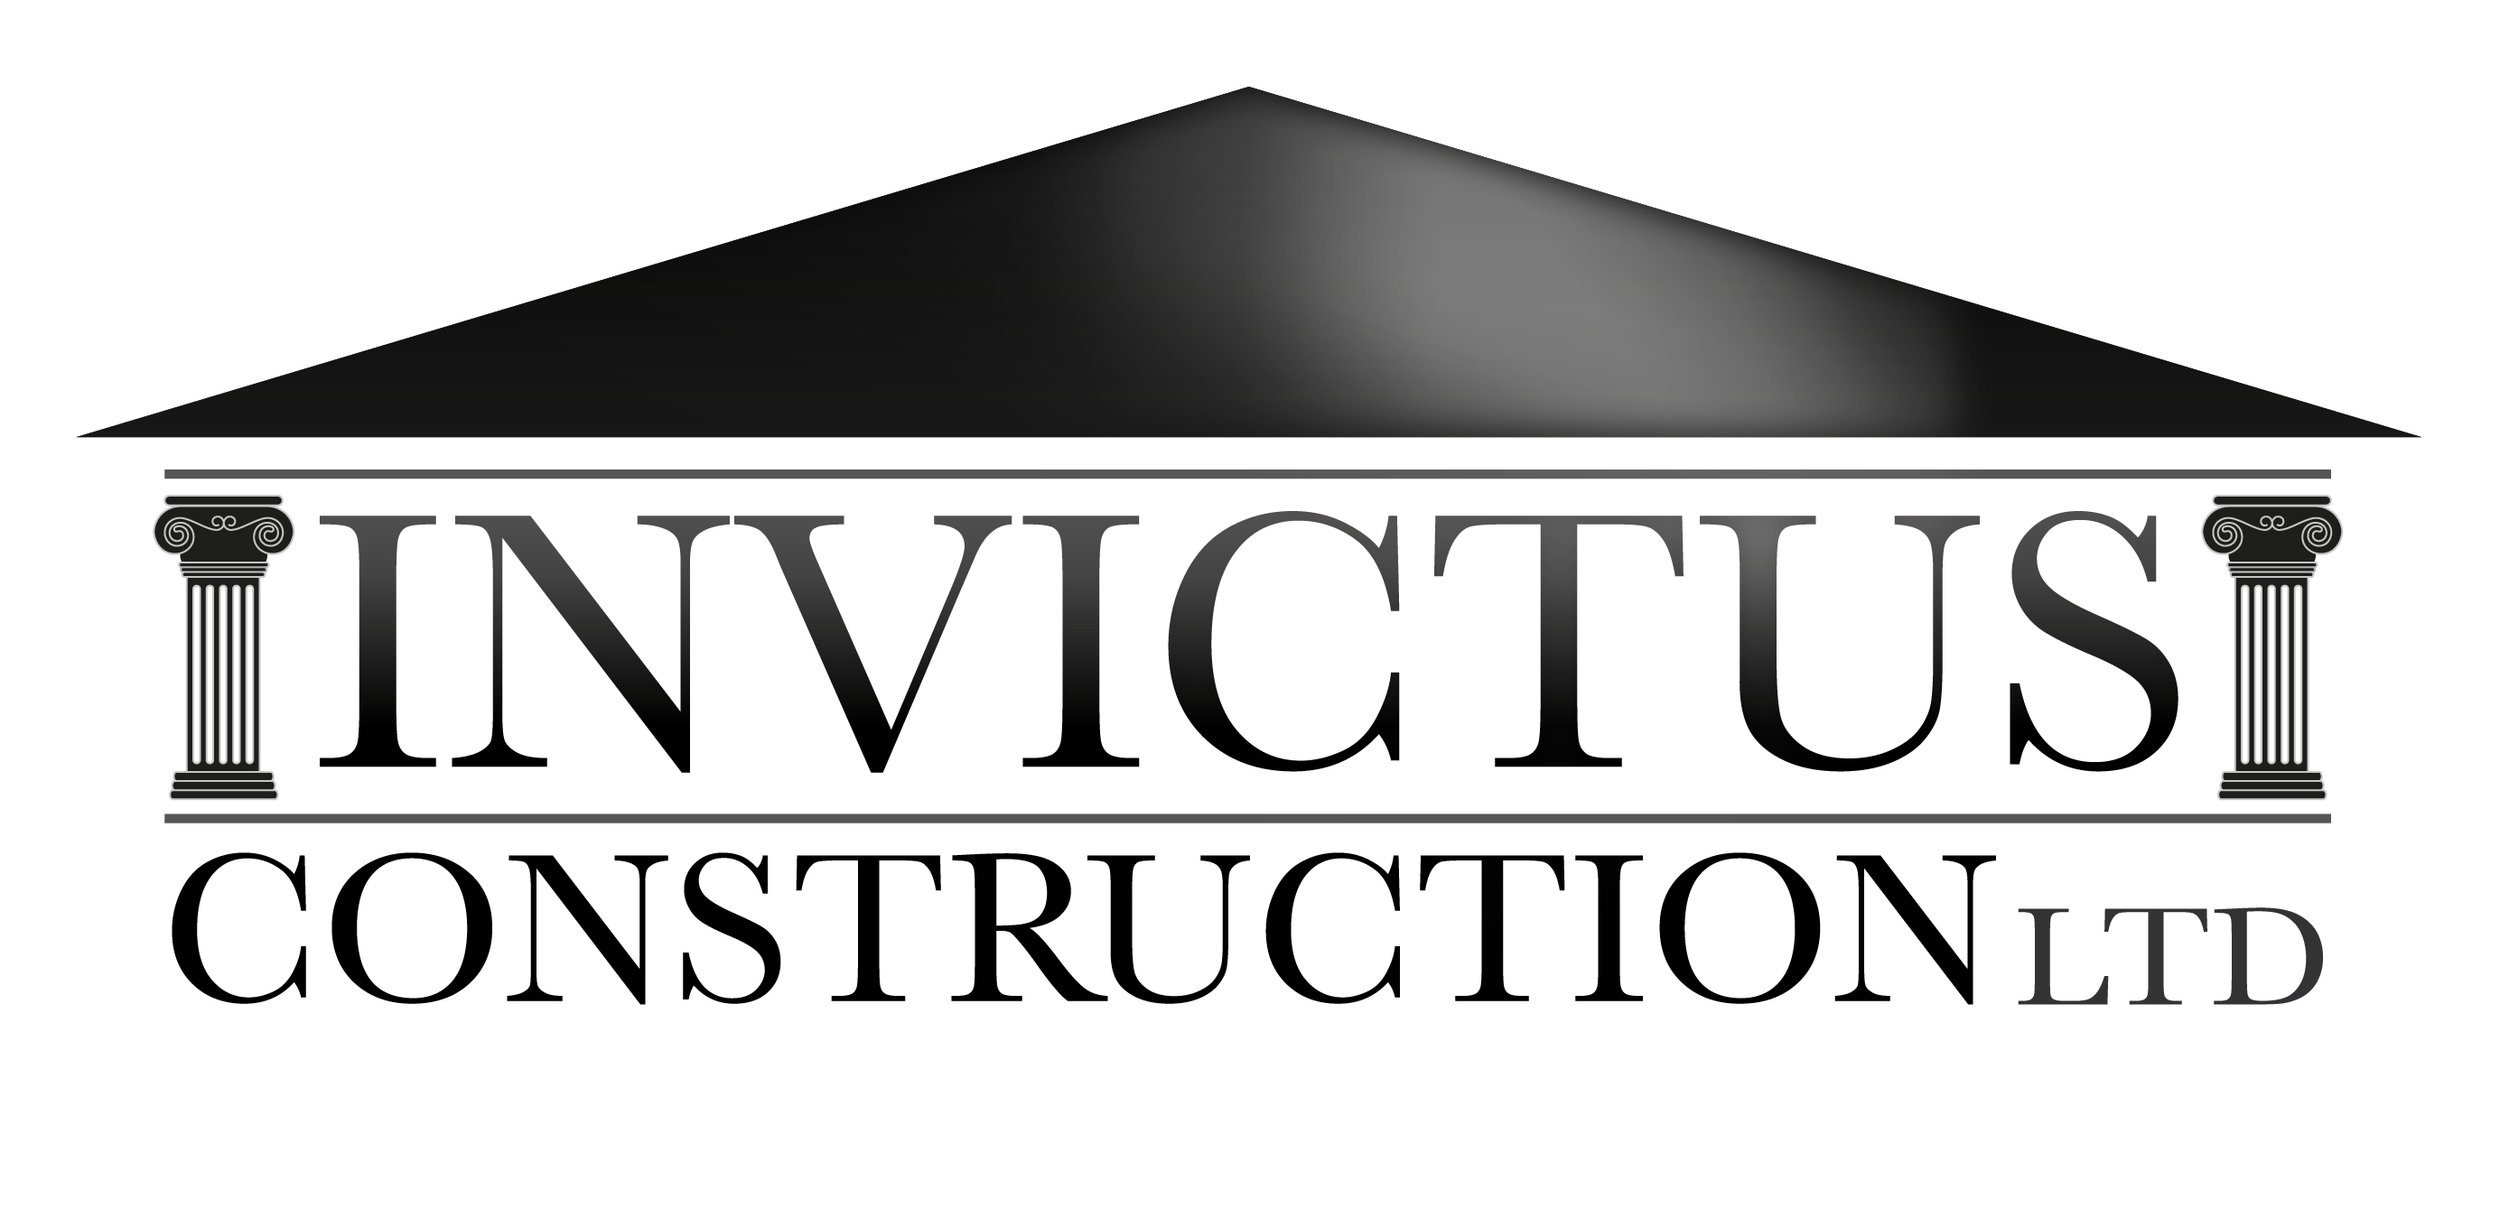 Invictus_construction_v2.jpg